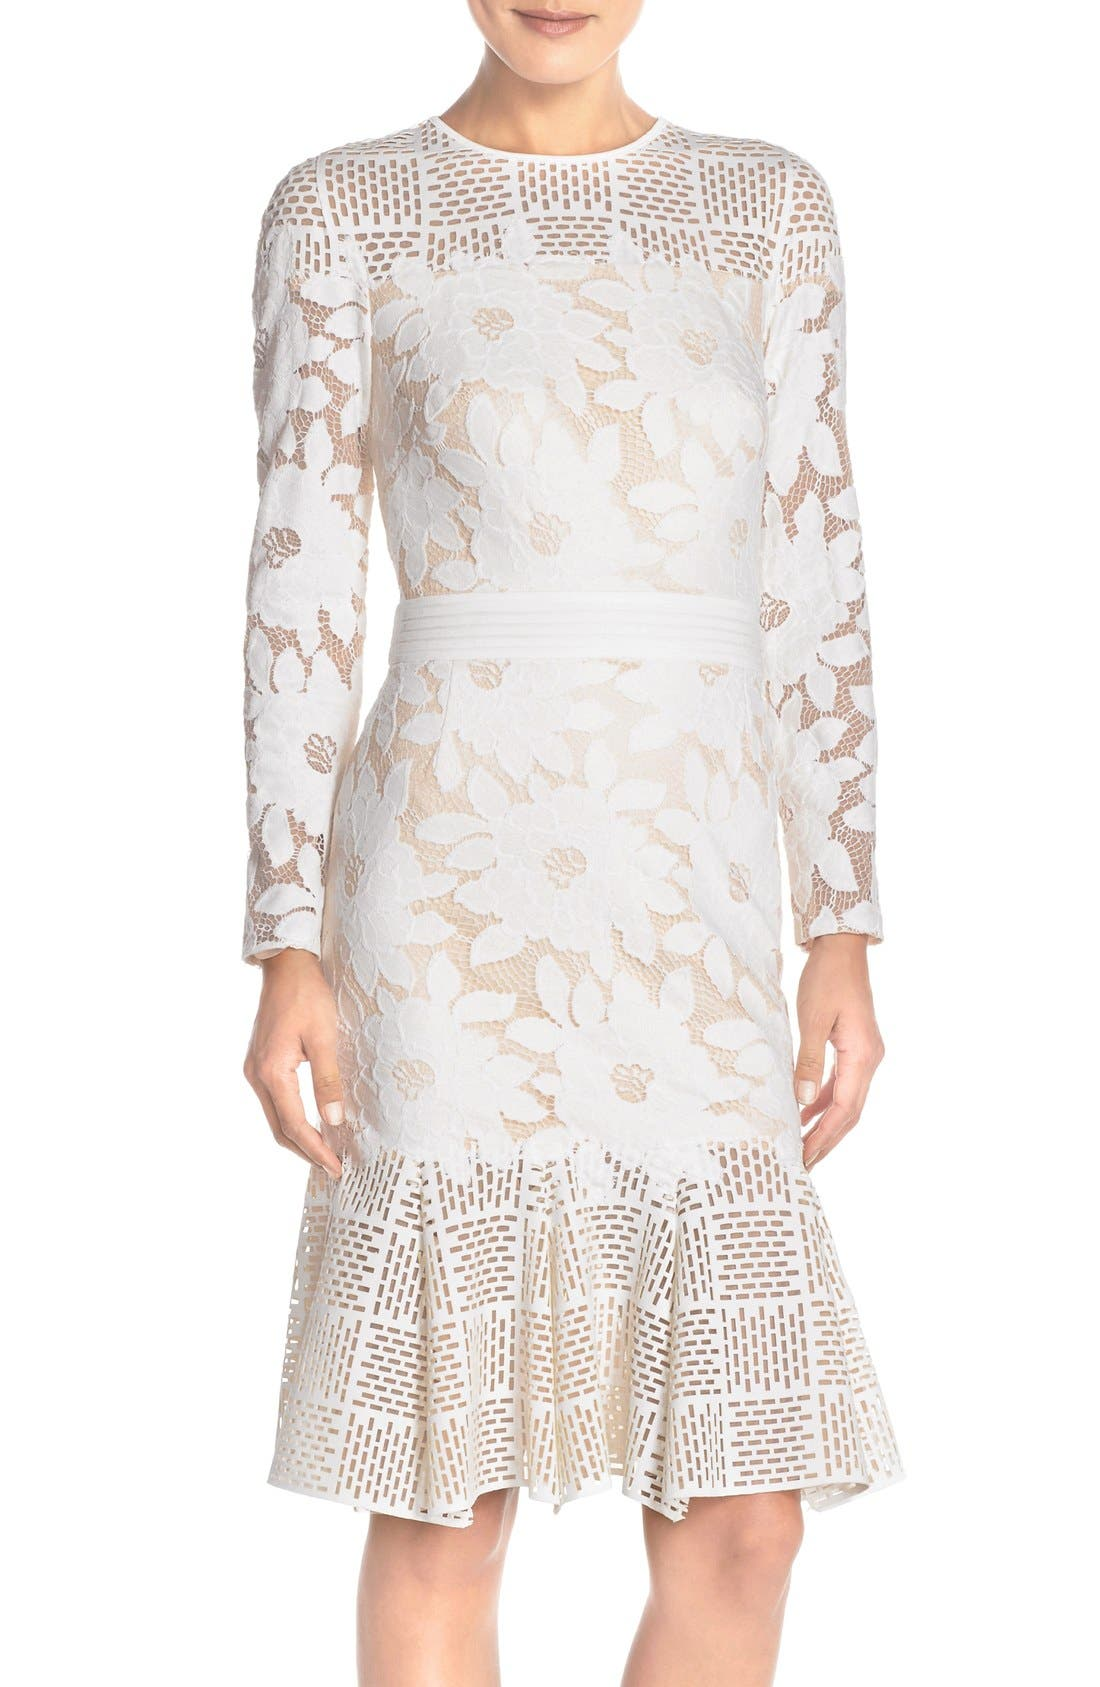 Lace & Cutout Neoprene Sheath Dress,                         Main,                         color, Ivory/ Primrose